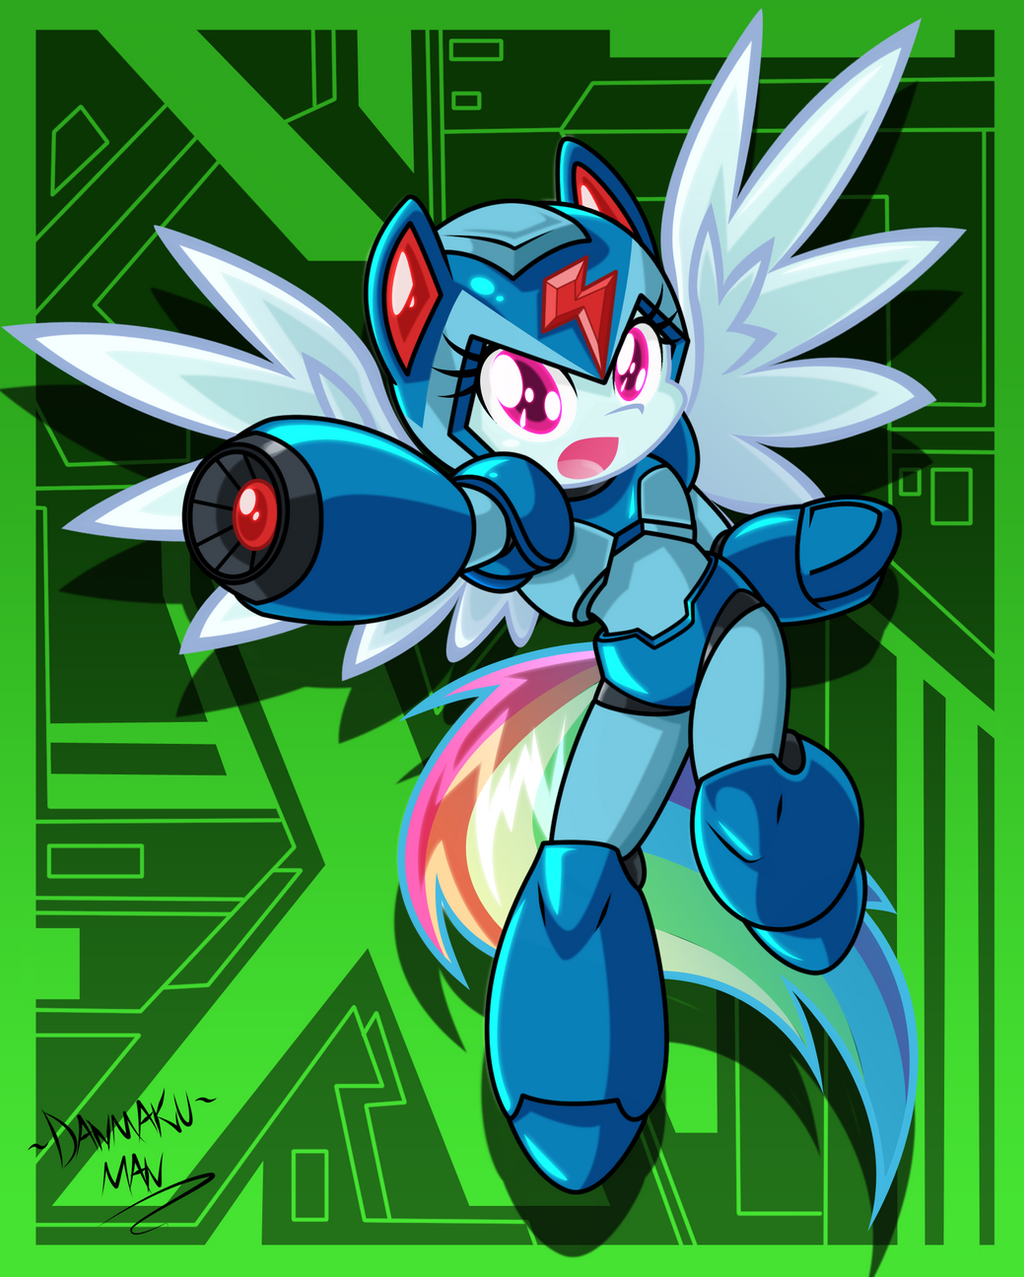 X Dash by DANMAKUMAN